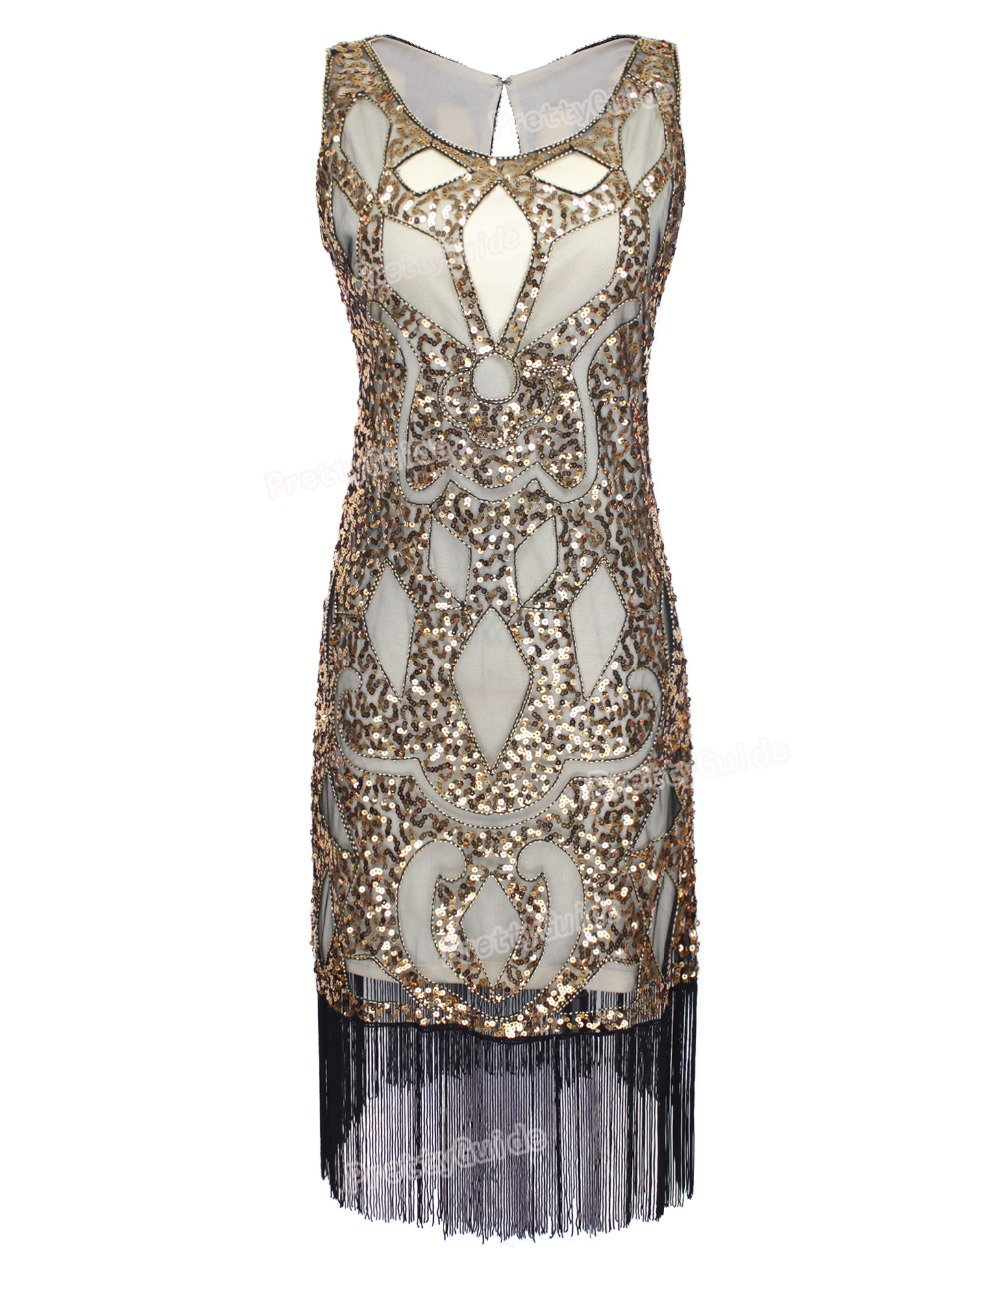 Fantastic Gatsby Womens Dresses With Perfect Creativity U2013 Playzoa.com